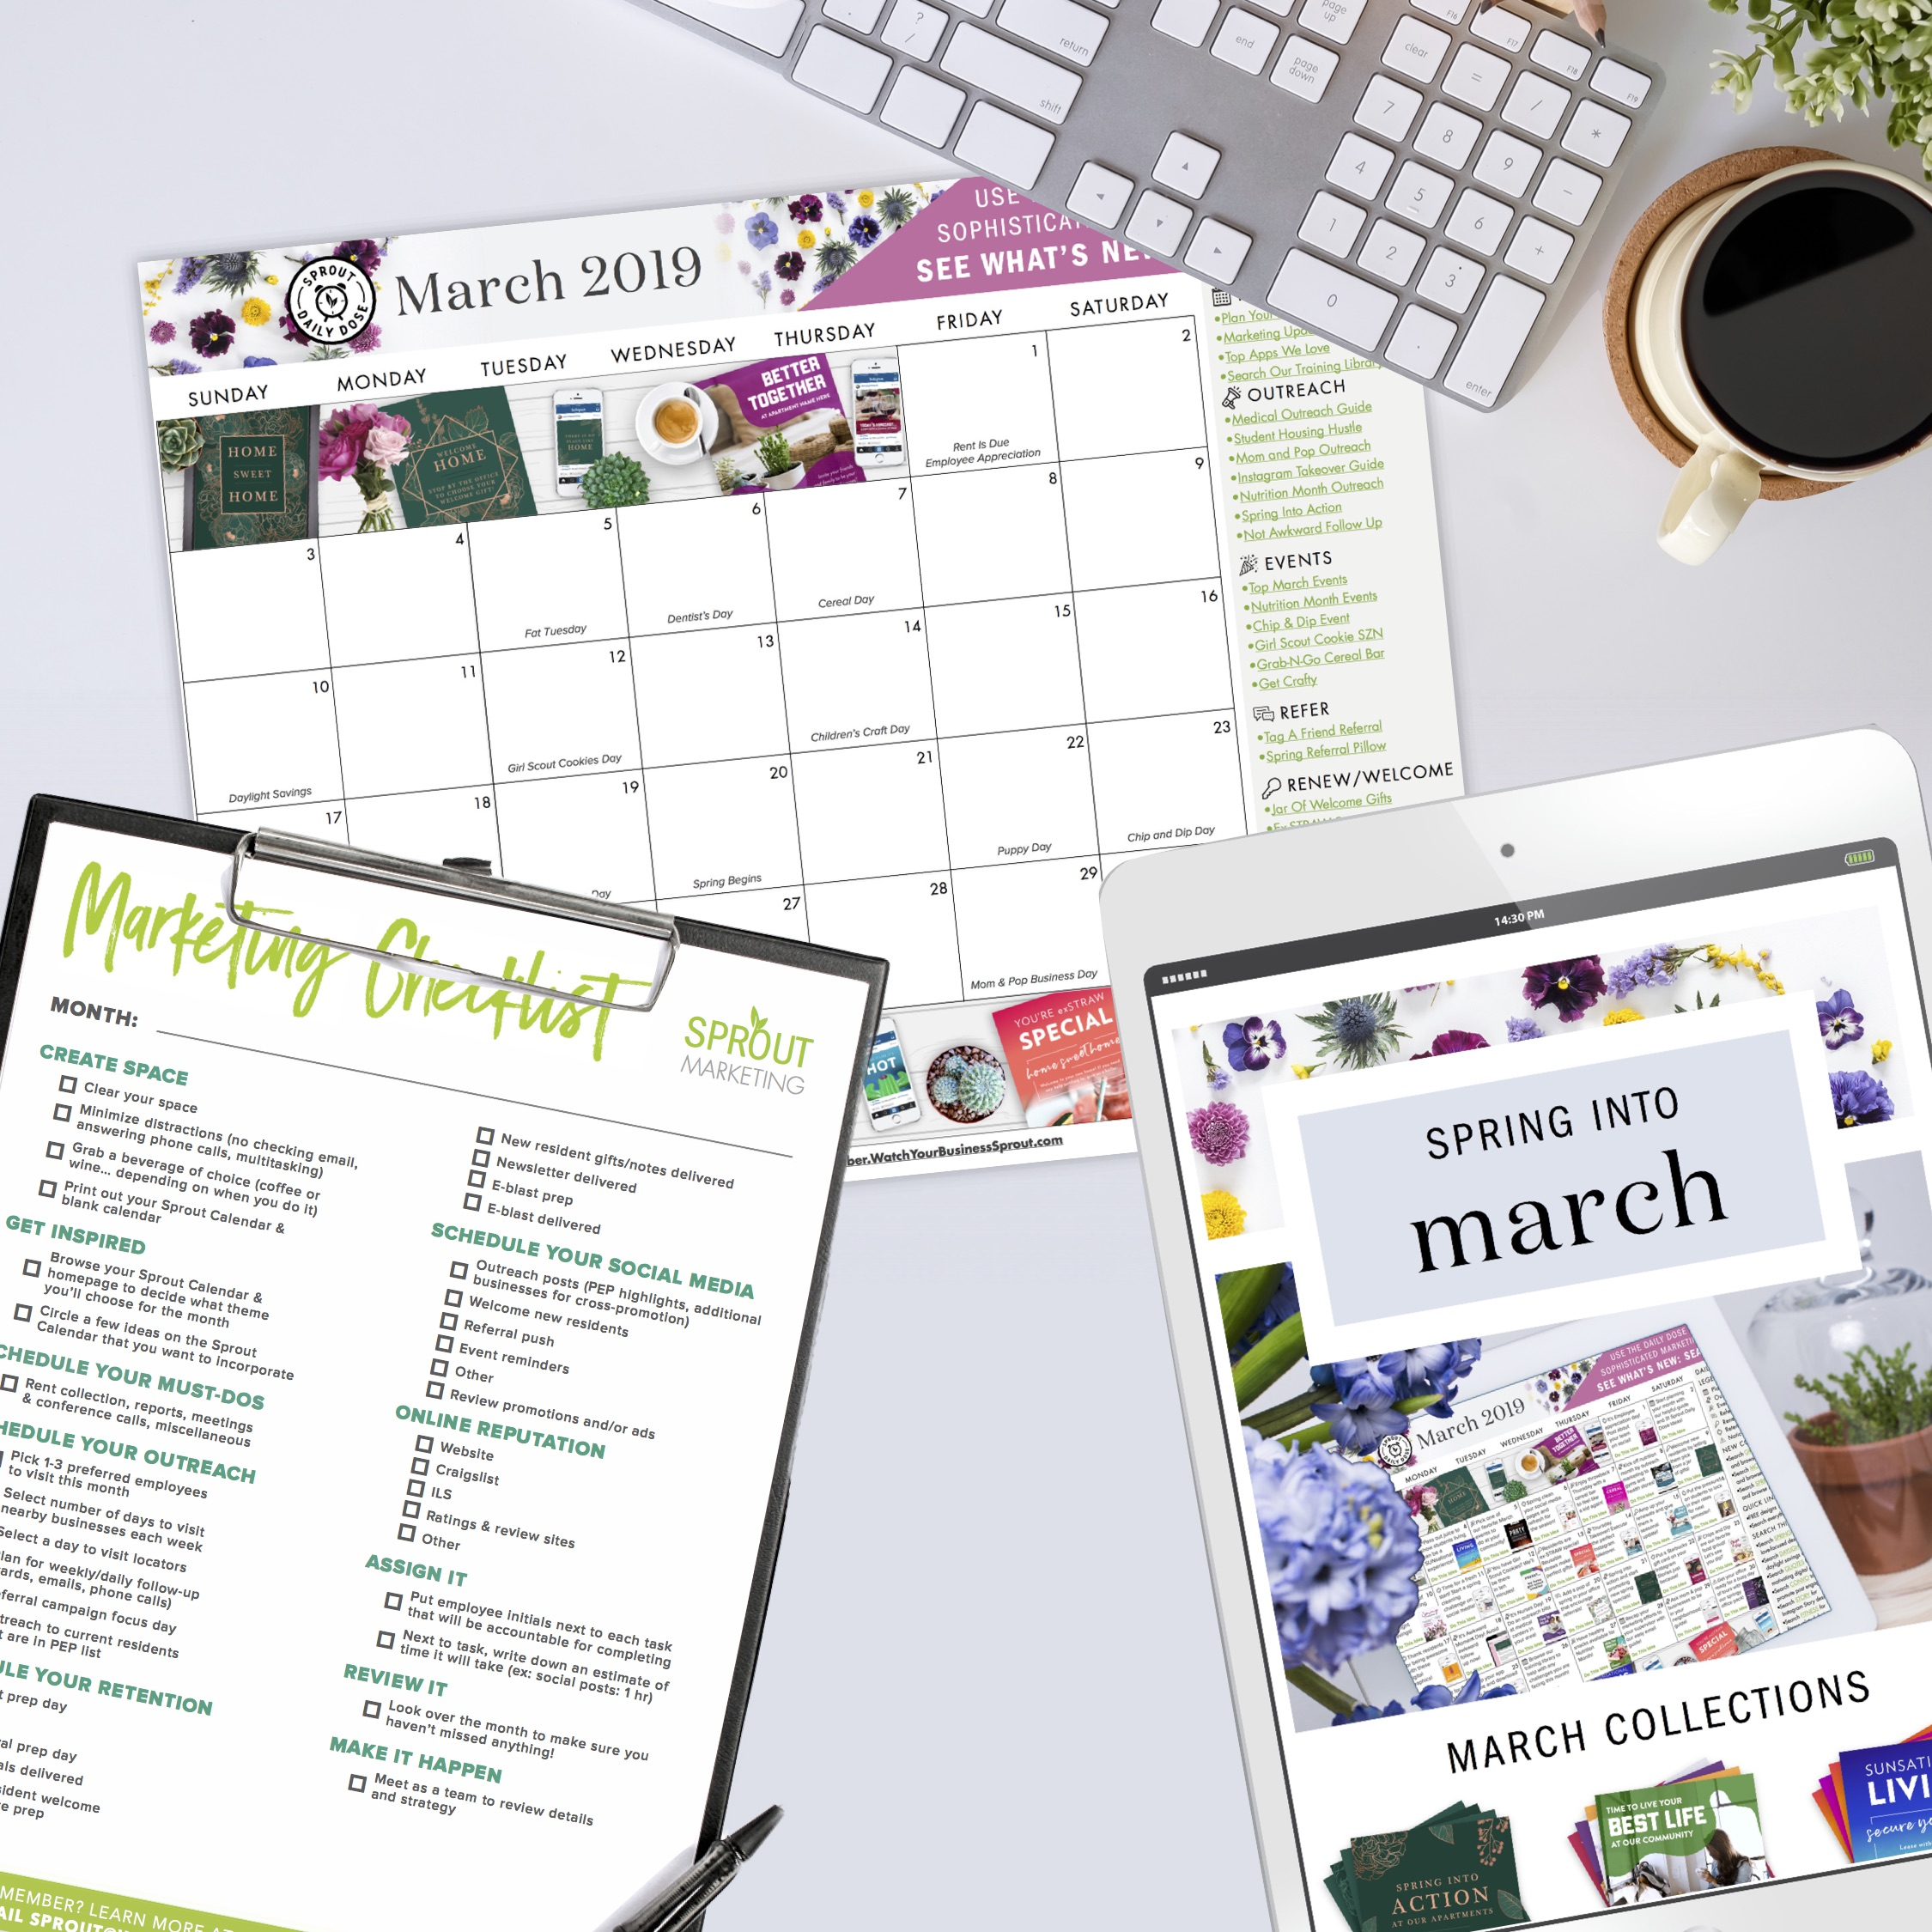 Start Here:Your planning kit - Sprout Ideas CalendarBlank Monthly CalendarBlank Weekly CalendarMarketing Checklist